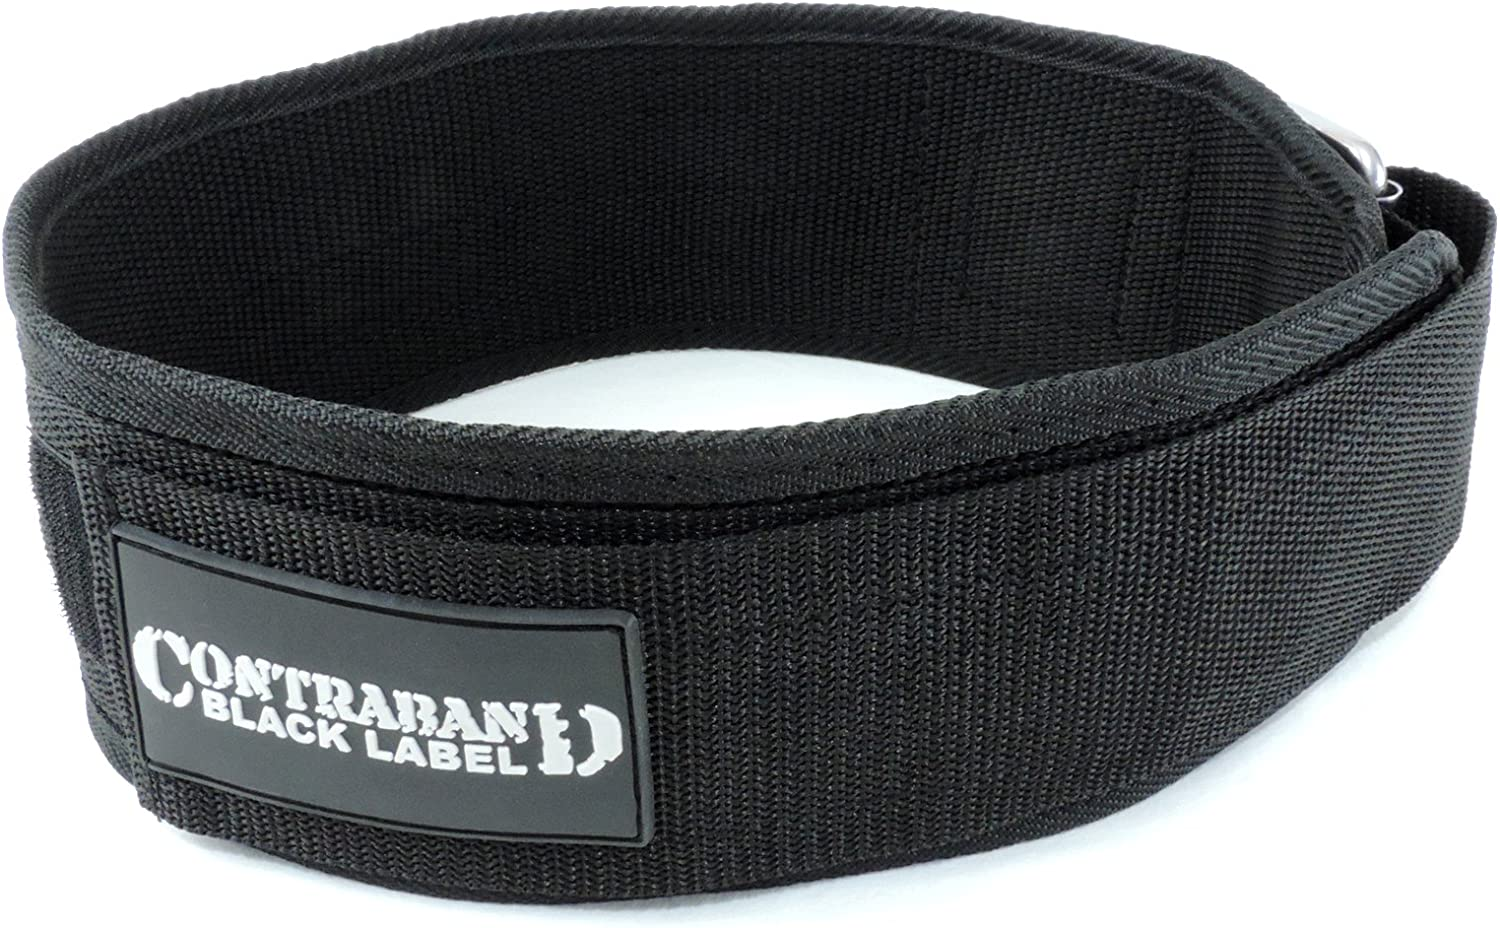 Perfect Heavy Duty Back Support for Weightlifting Bodybuilding Powerlifting Men /& Women Contraband Black Label 4010 4inch Nylon Weight Lifting Belt w//Hook /& Loop